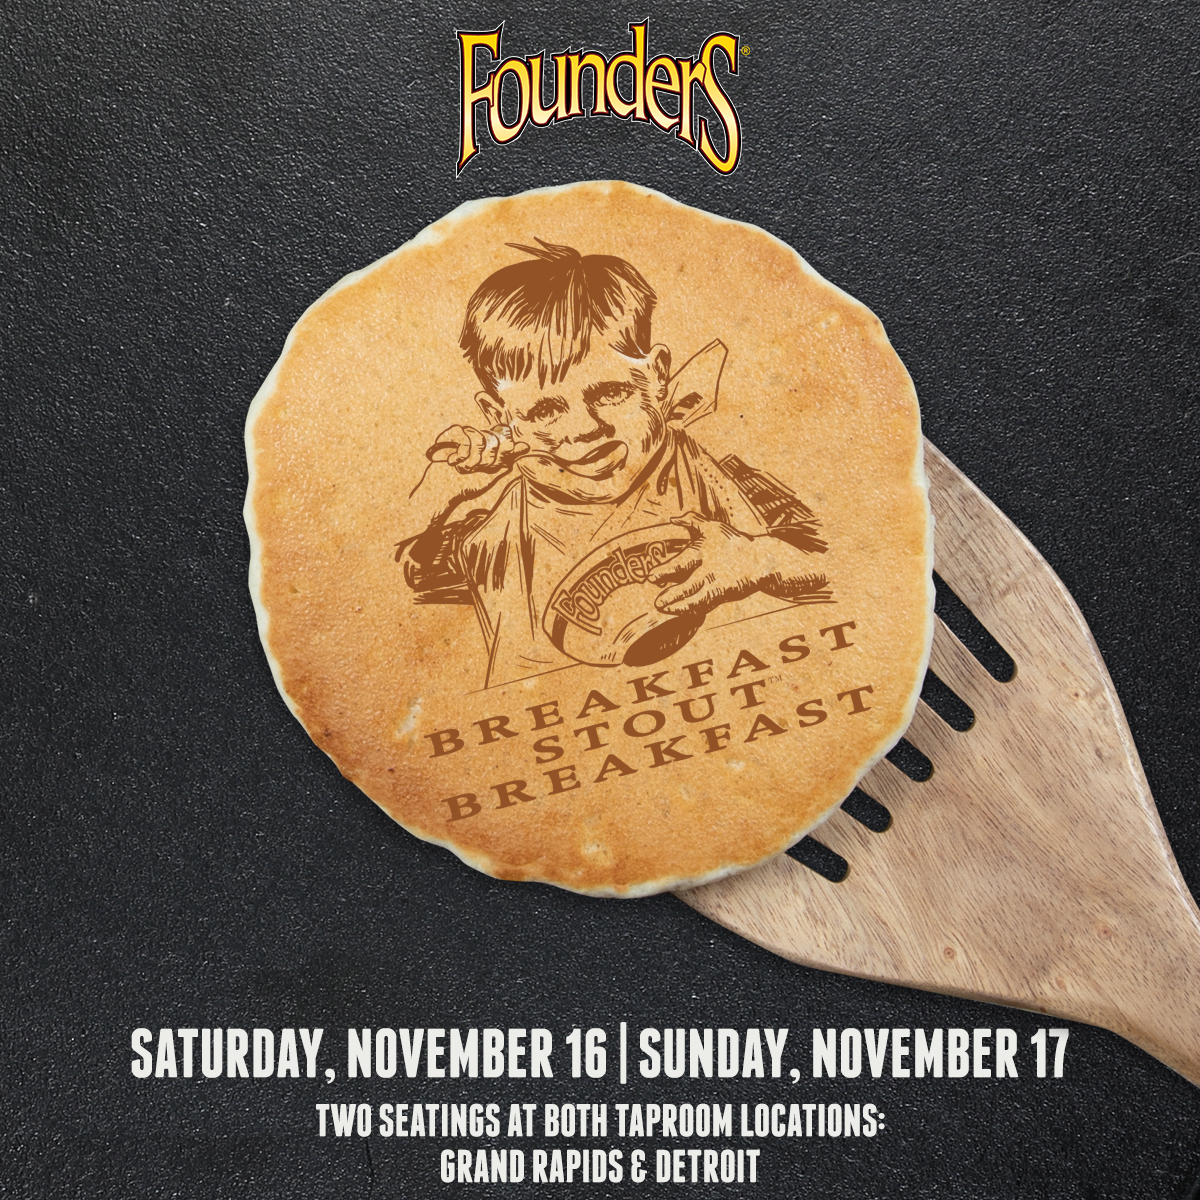 Founders Breakfast Stout Breakfast event poster